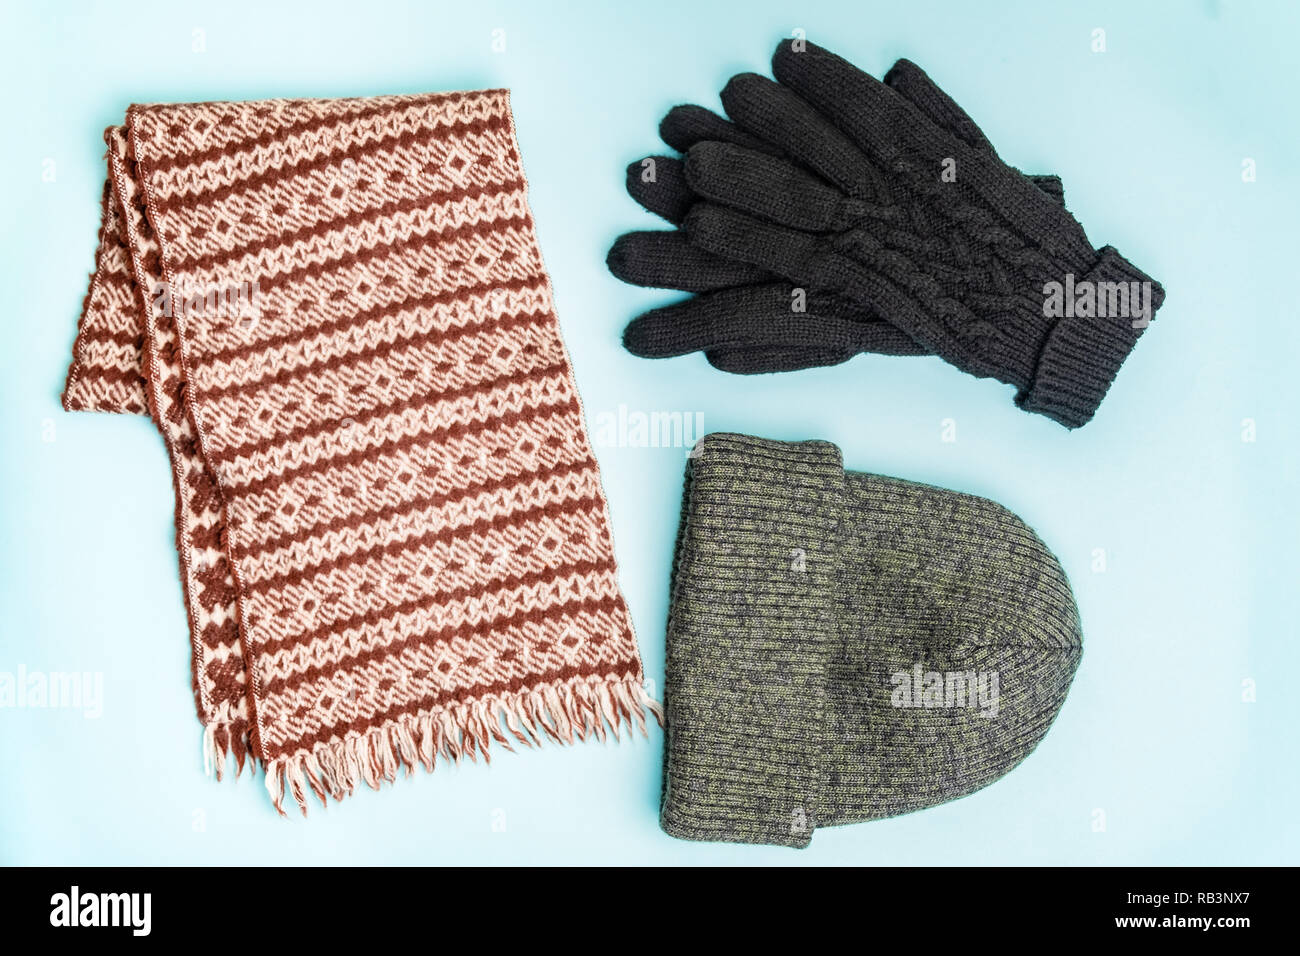 Top view of winter clothing accessories for outdoor use. Knit-hat beanie, winter gloves and wool scarf neatly organised on pale blue background - Stock Image